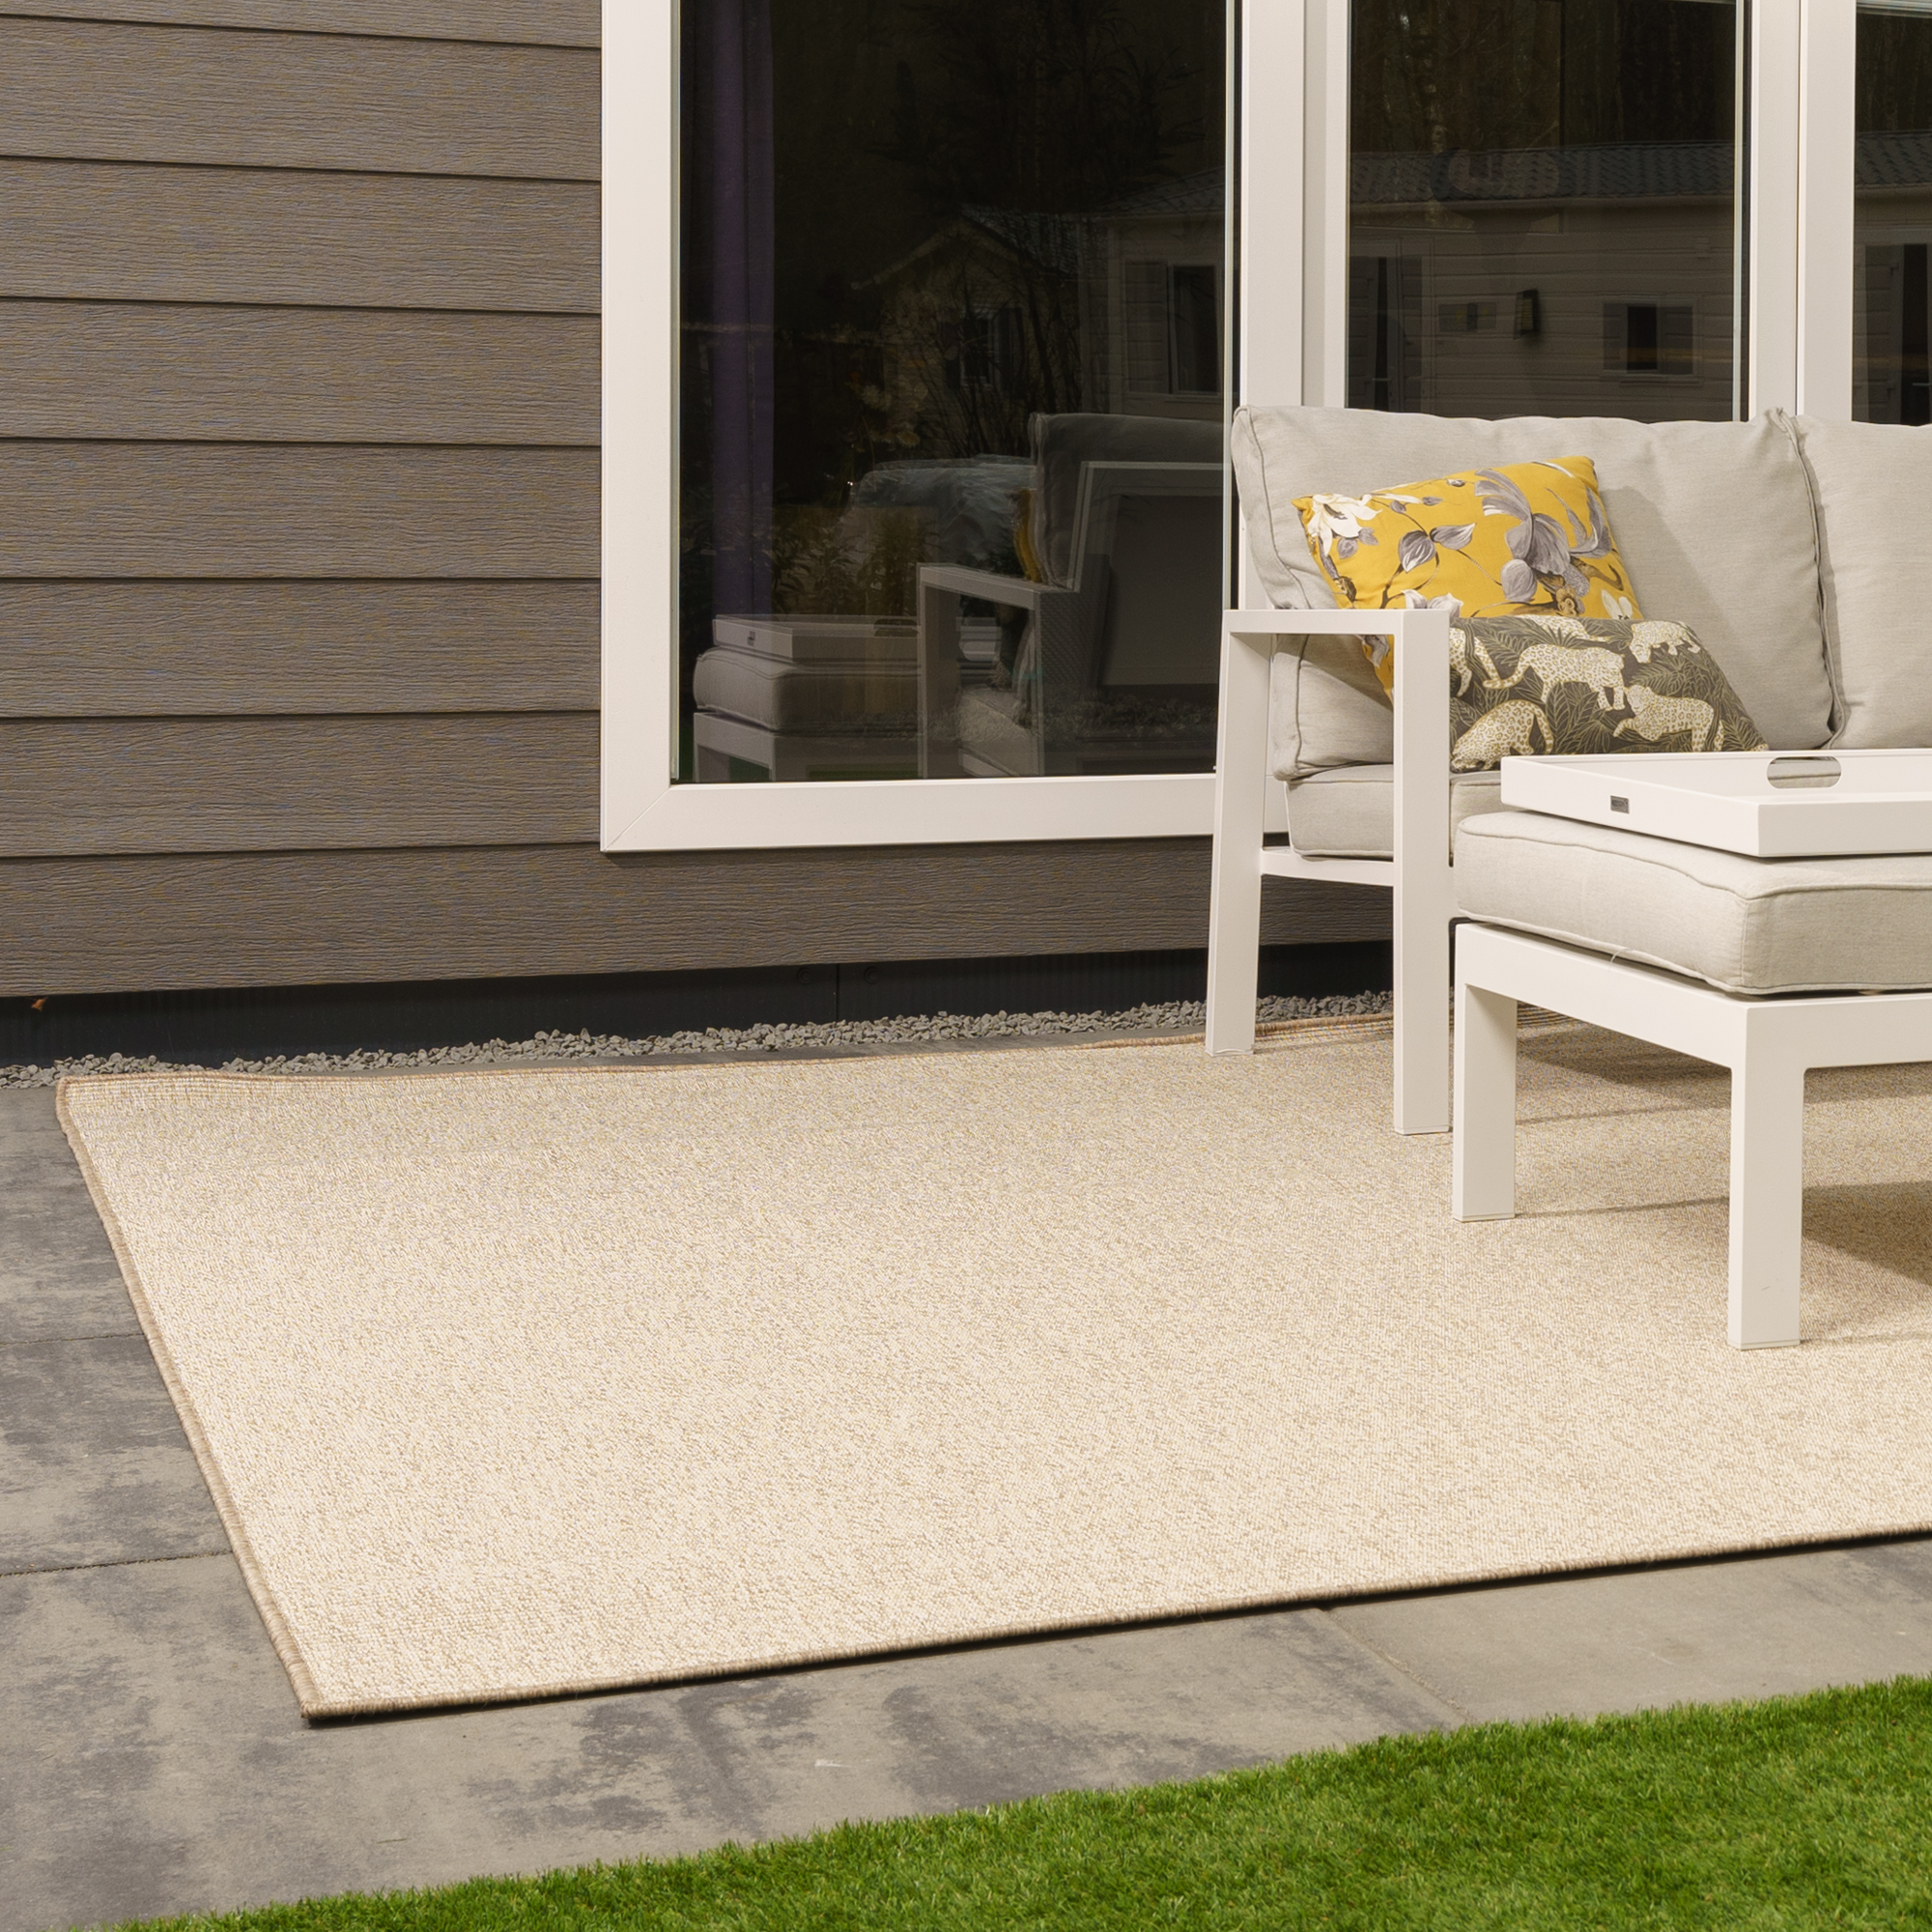 Vloerkleed Xilento Outdoor 7360-34